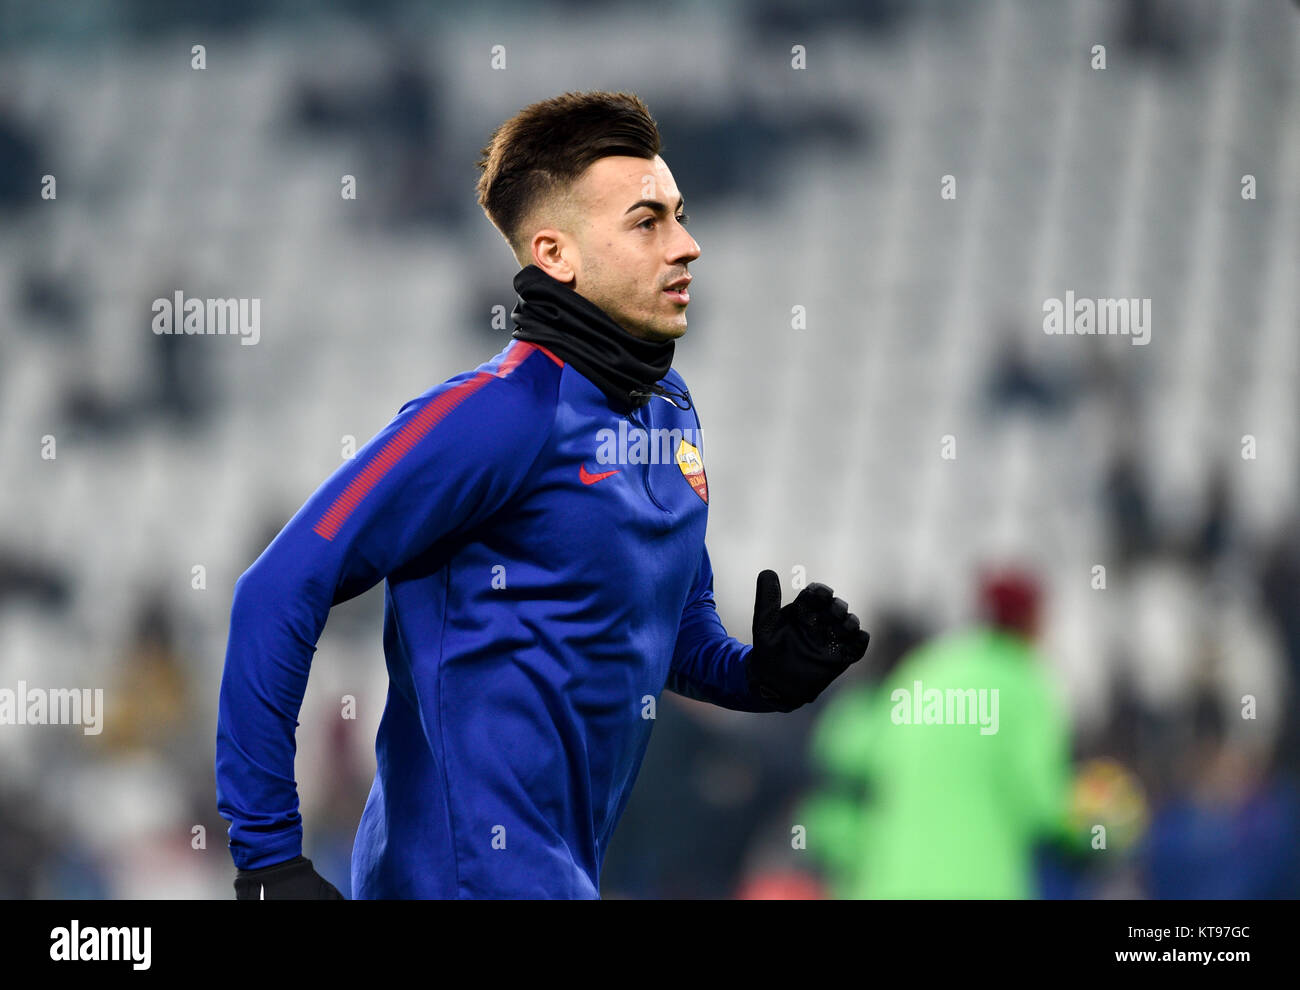 stephan el shaarawy as roma stock photos stephan el shaarawy as roma stock images alamy. Black Bedroom Furniture Sets. Home Design Ideas